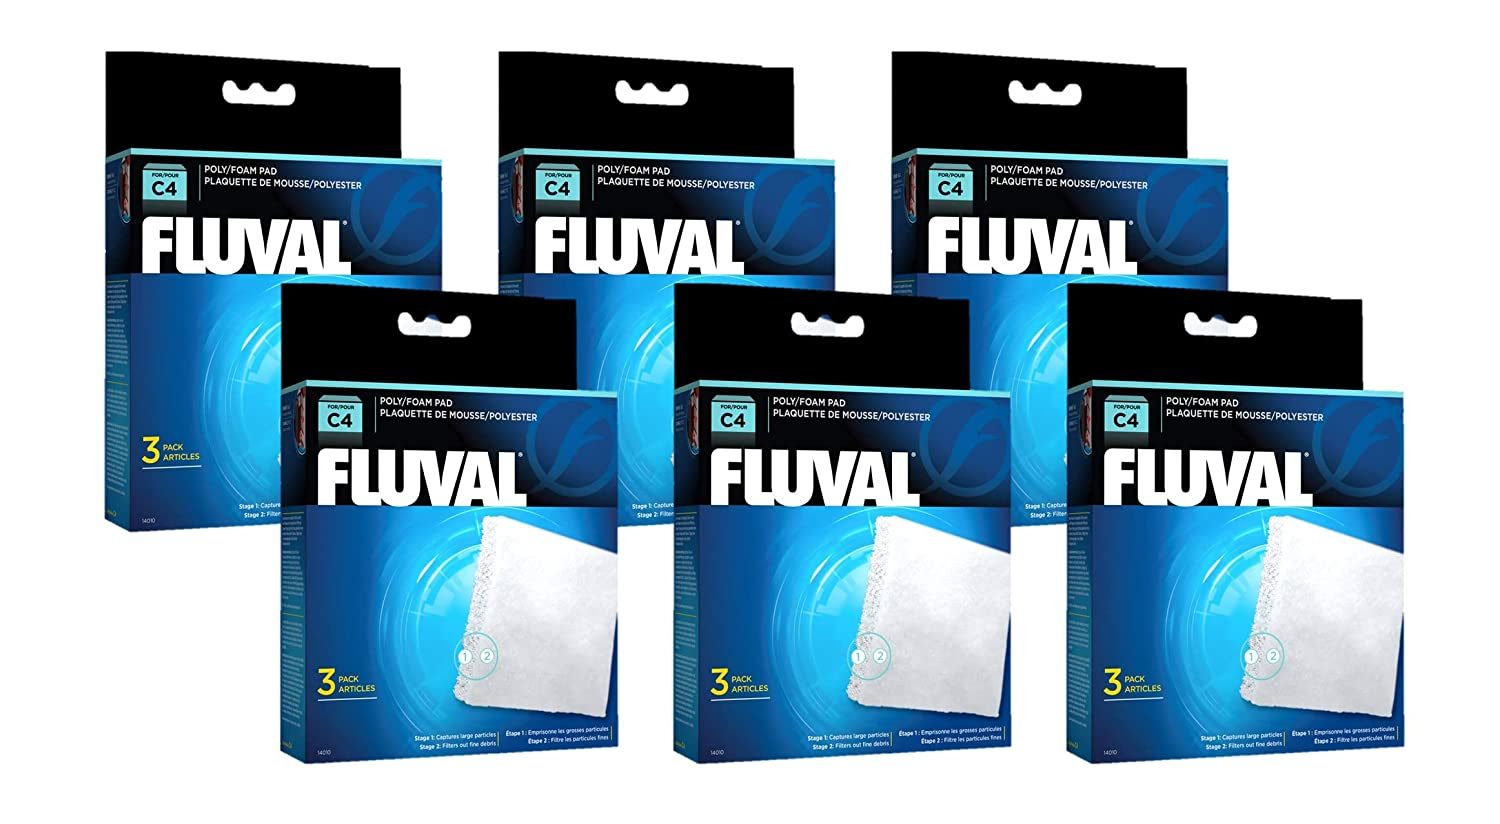 Fluval Poly Foam Pad 18 Pack (6 Units of 3)